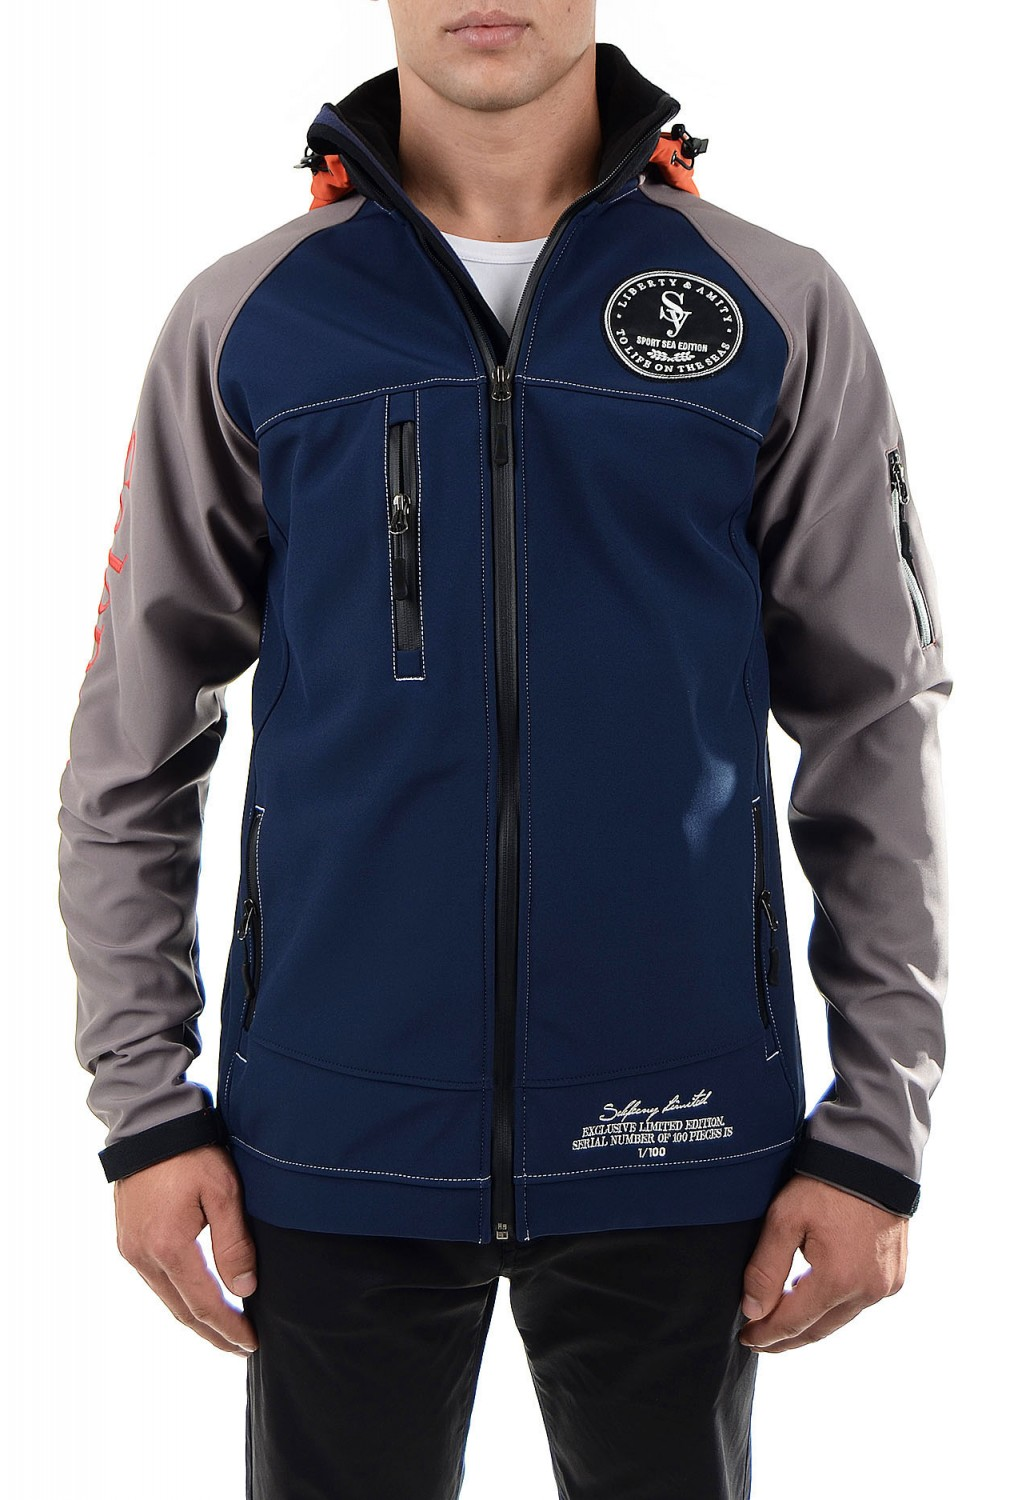 SY_LIMITEDEDITION4_YACHTING_Pánská_softshell_bunda_yachting_edition (1)